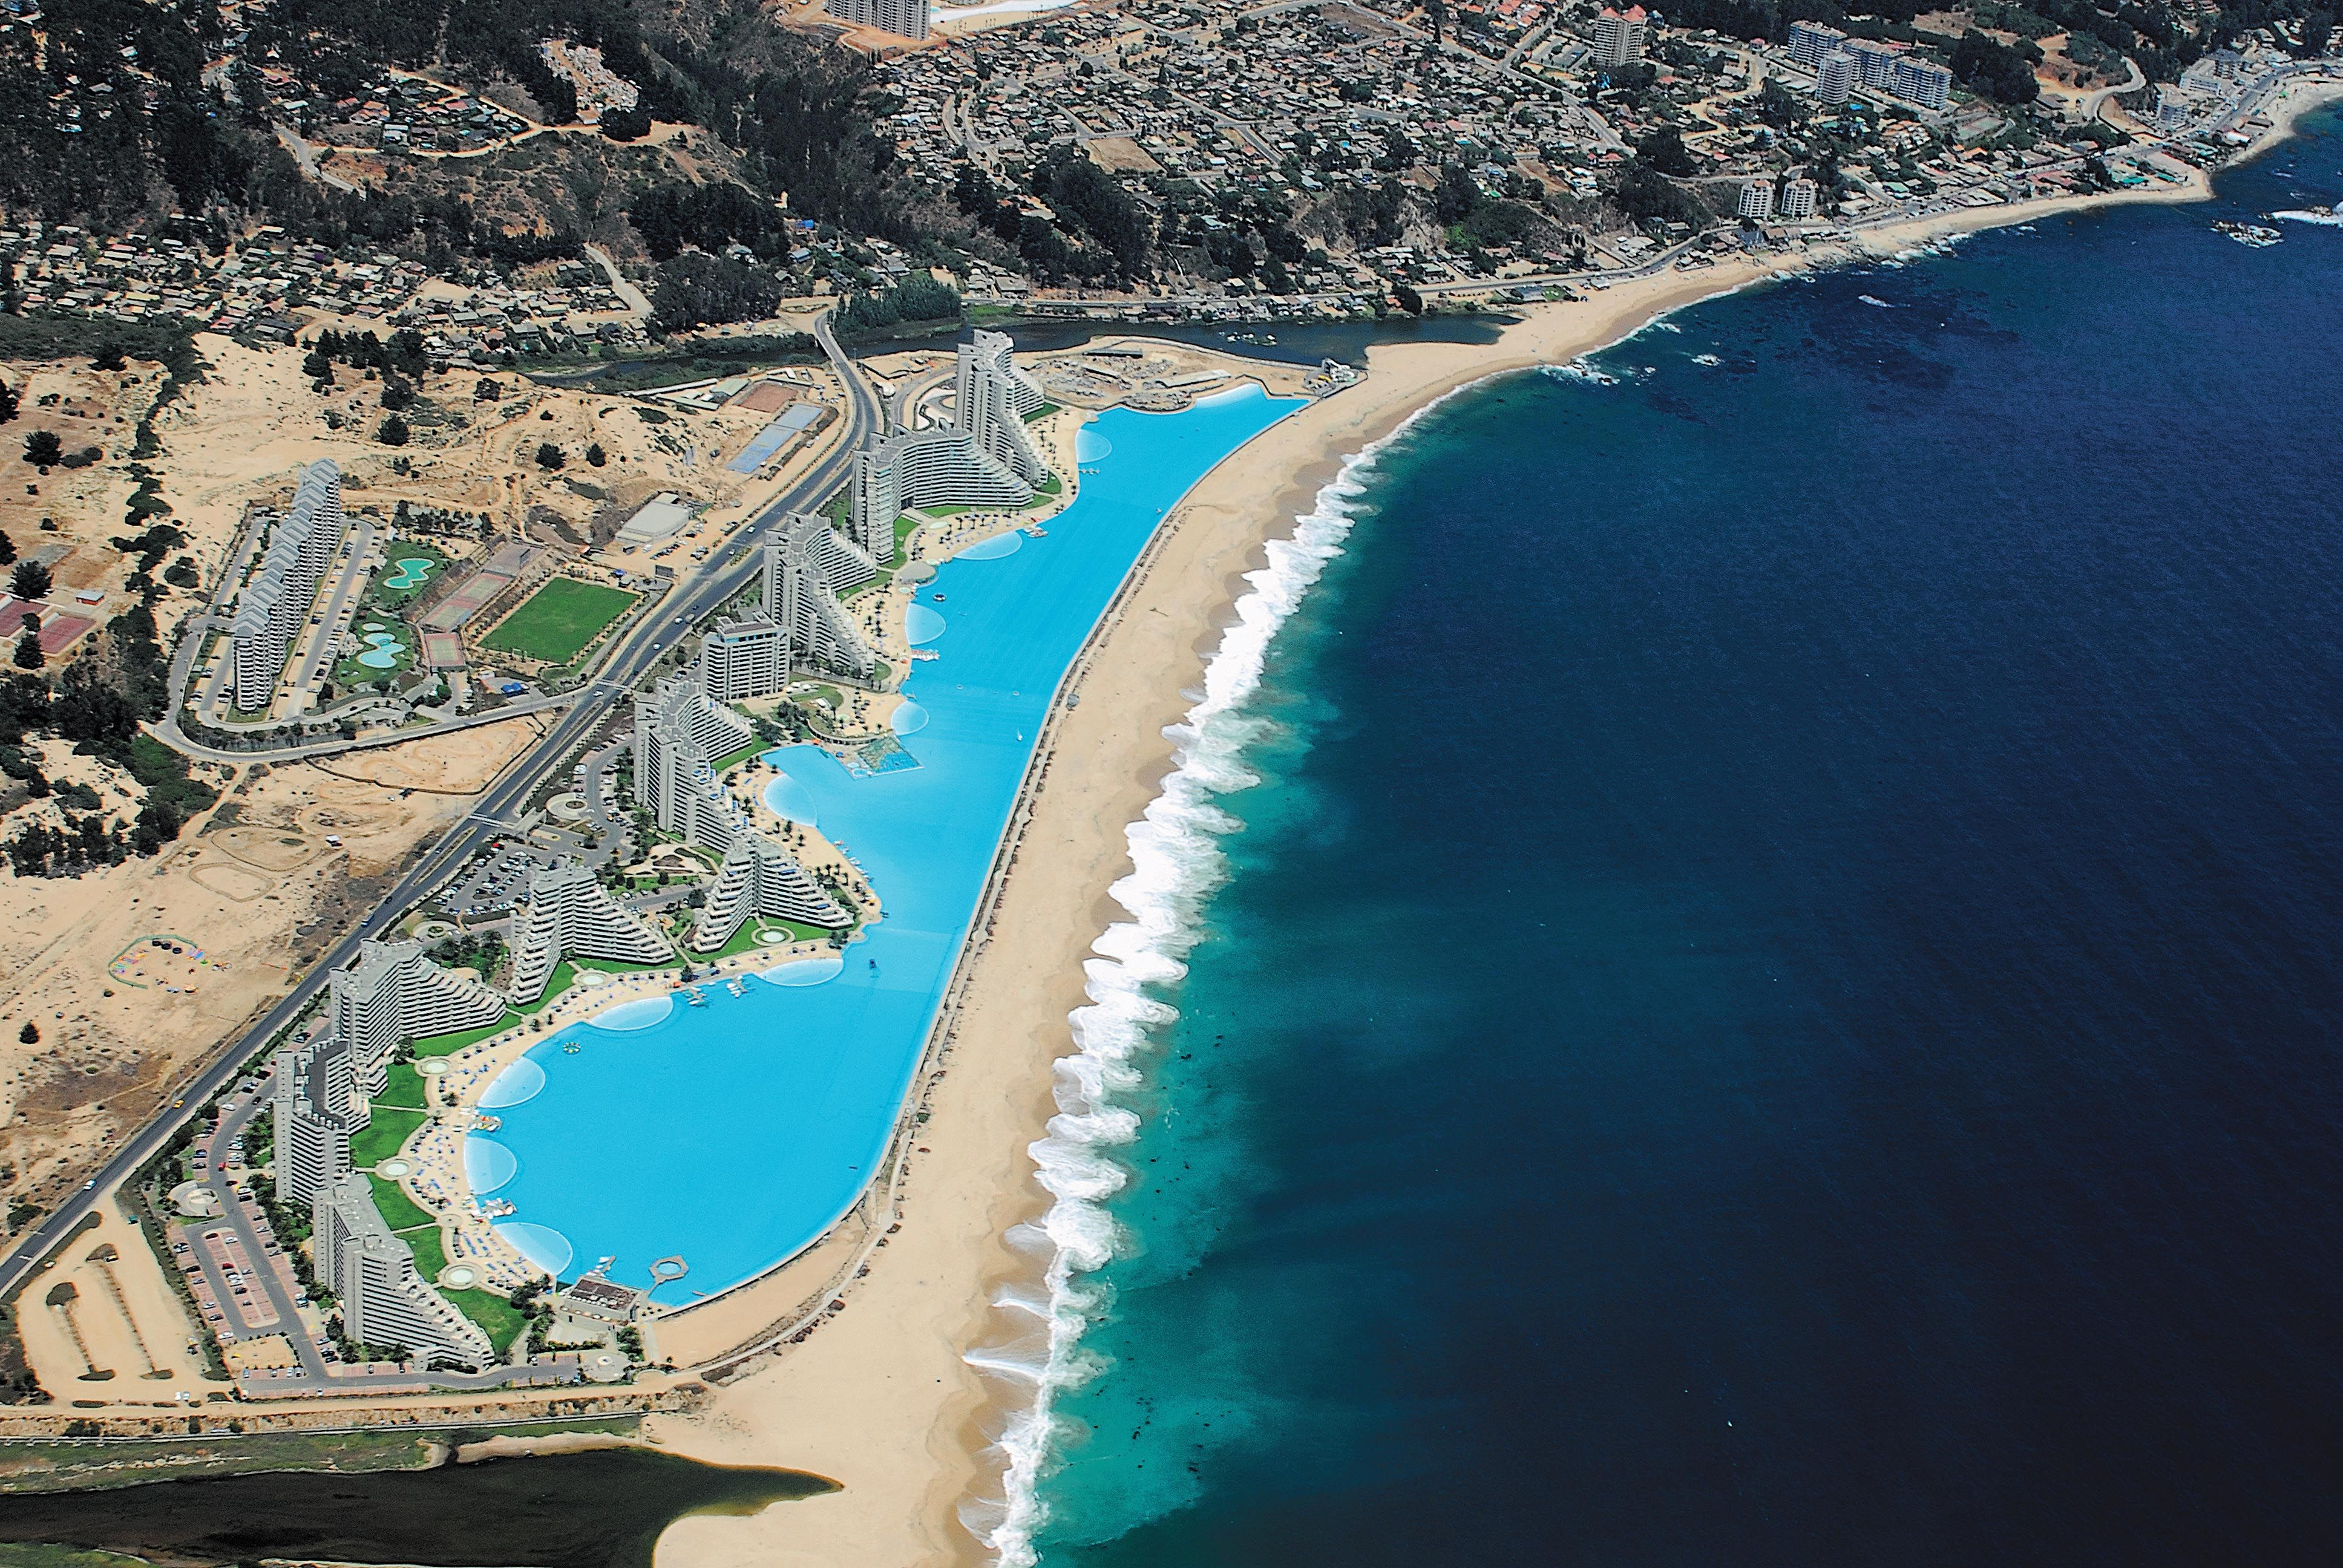 The largest swimming pool in the world is more than 3 000 for Giant swimming pool